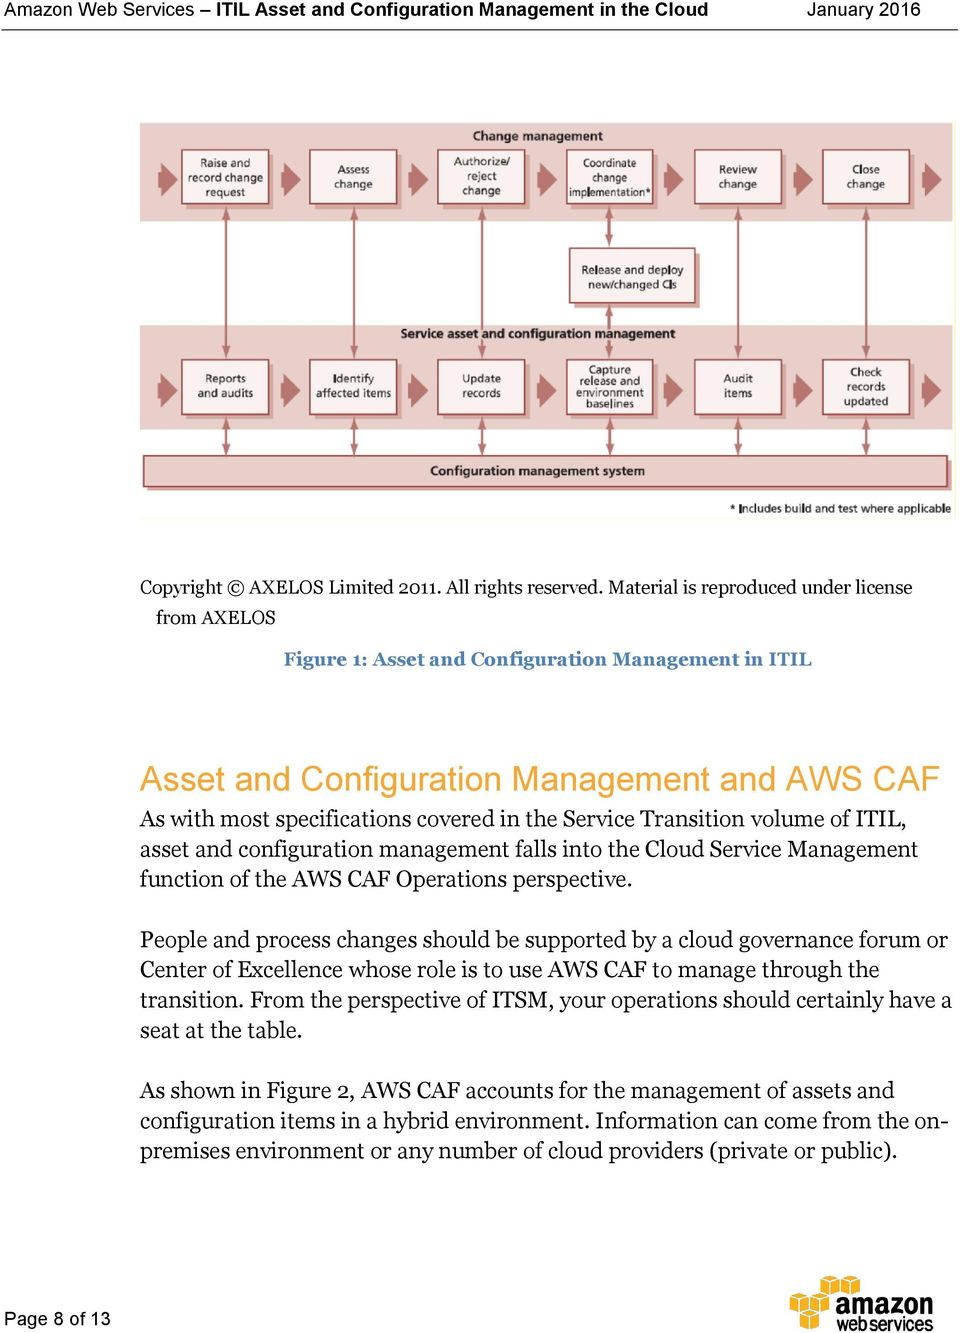 Transition volume of ITIL, asset and configuration management falls into the Cloud Service Management function of the AWS CAF Operations perspective.